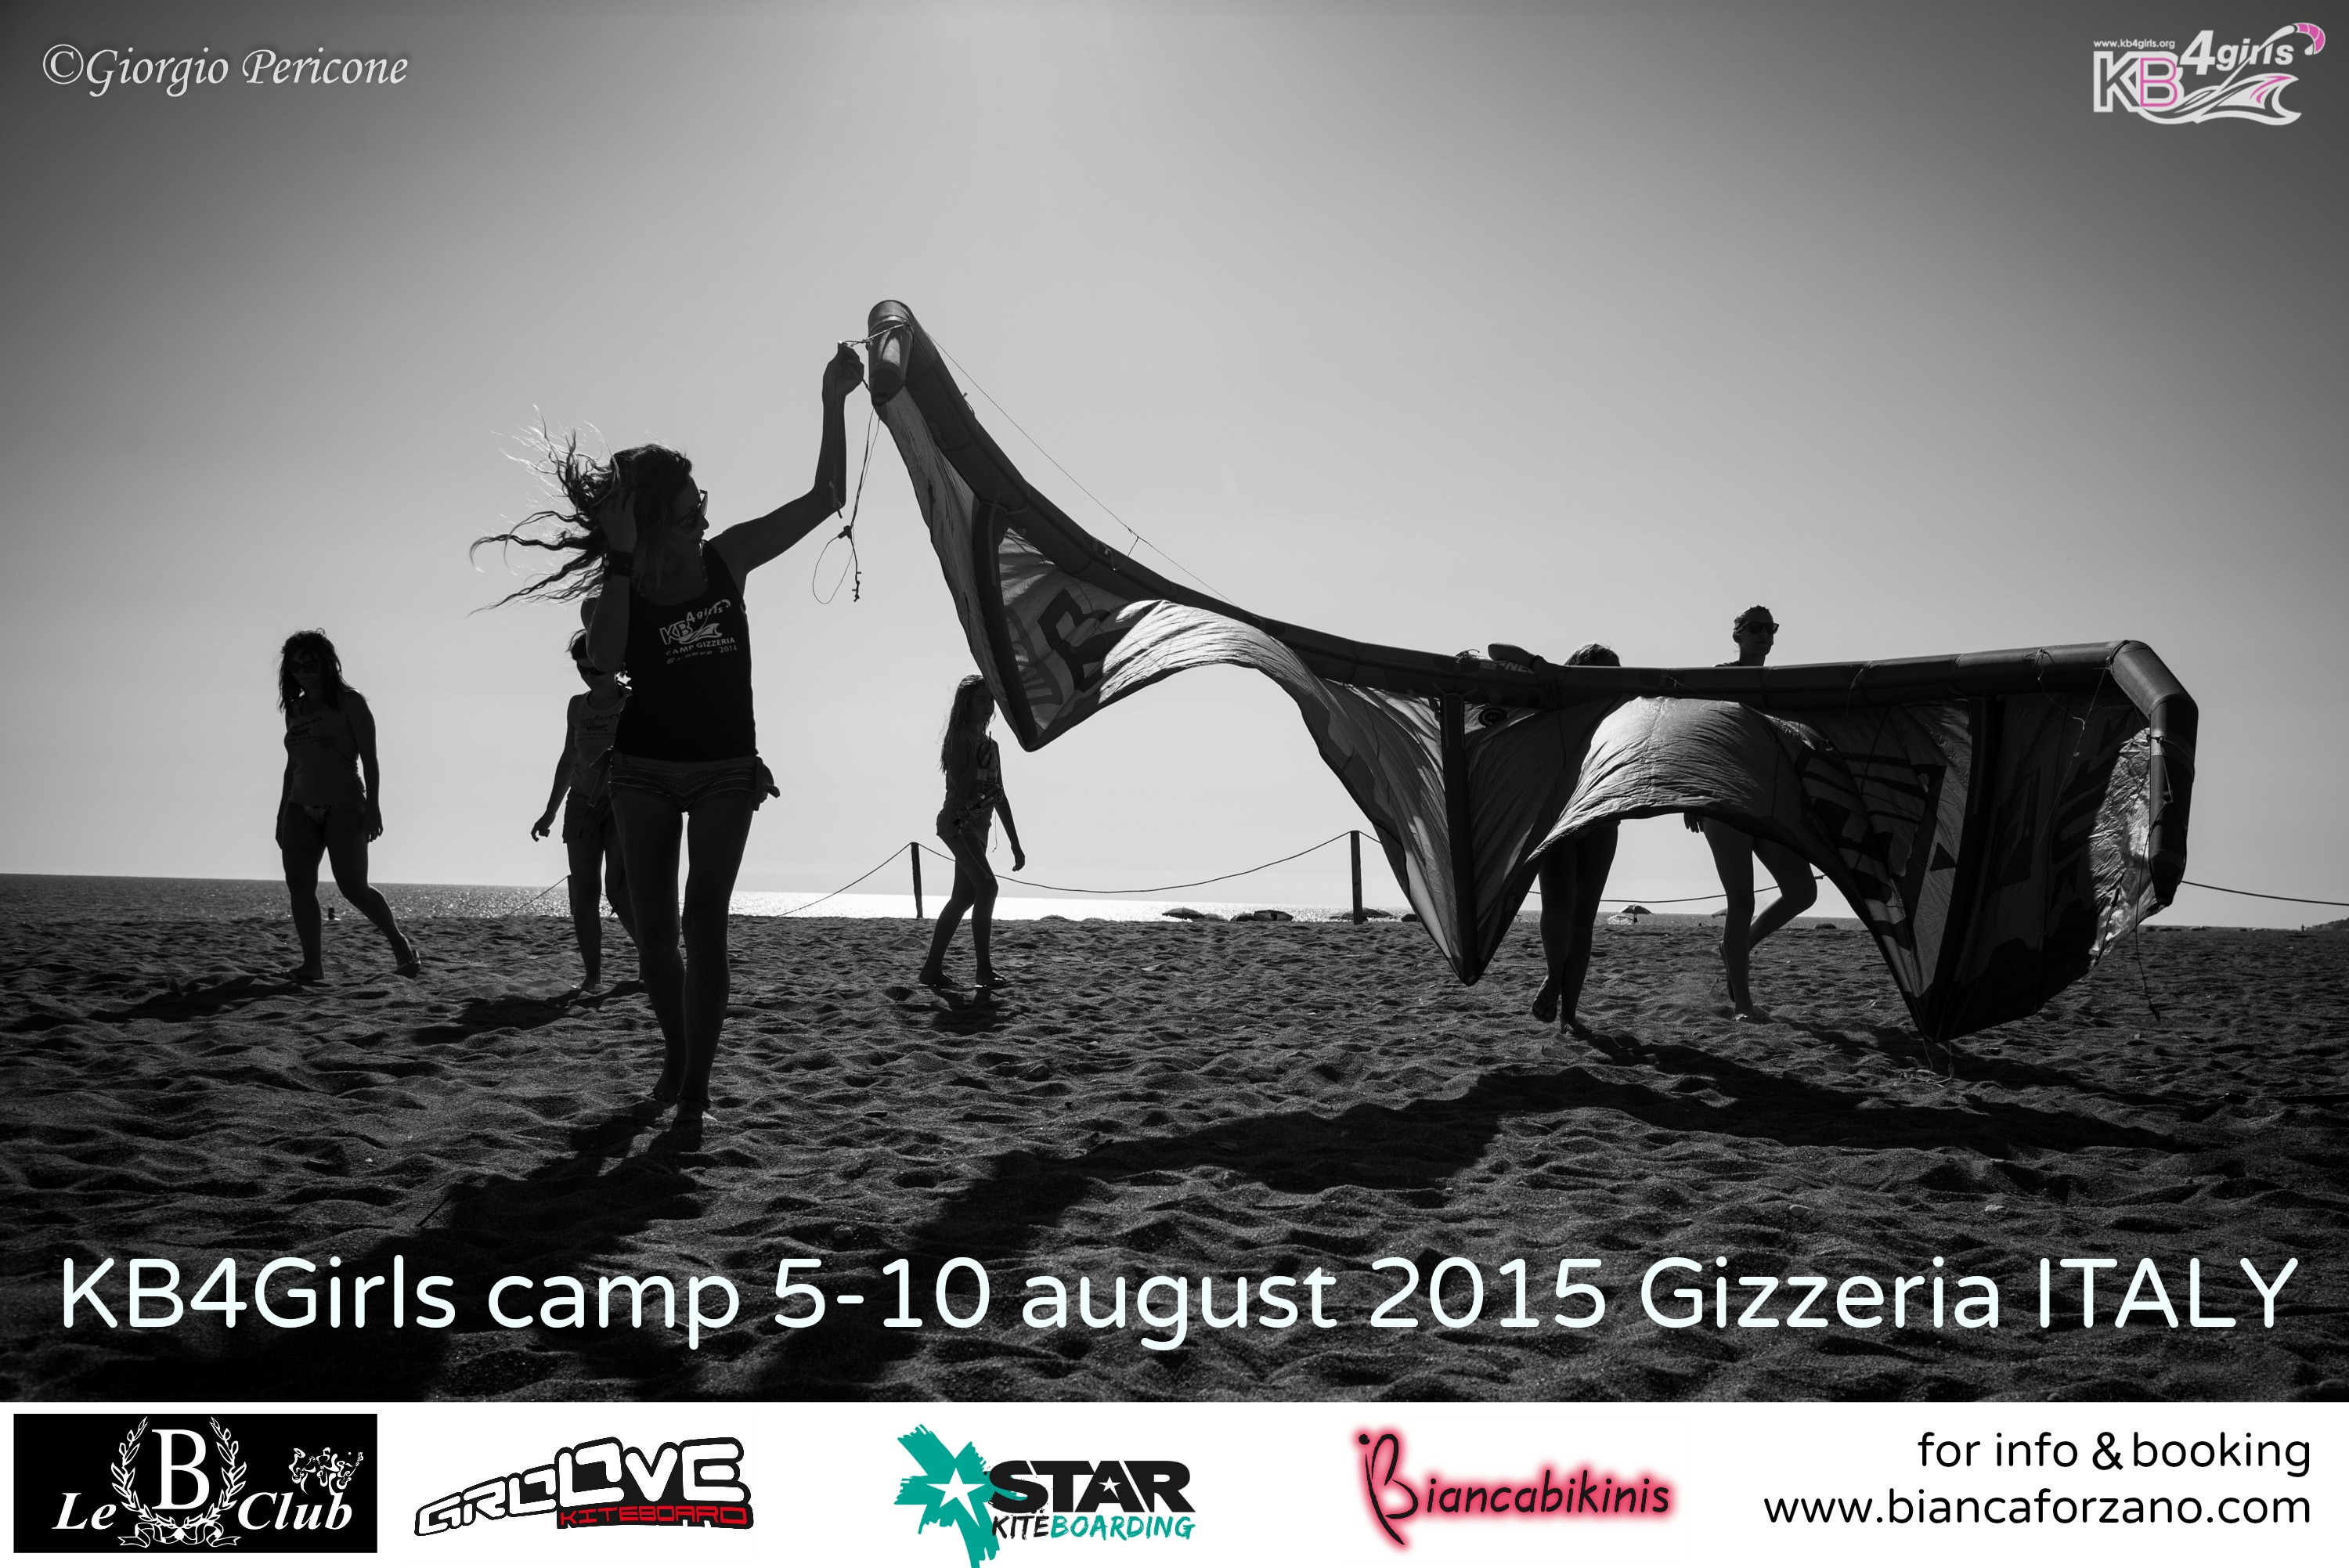 KB4Girls – Kitesurf retreat in Calabria Italy 5-10 August